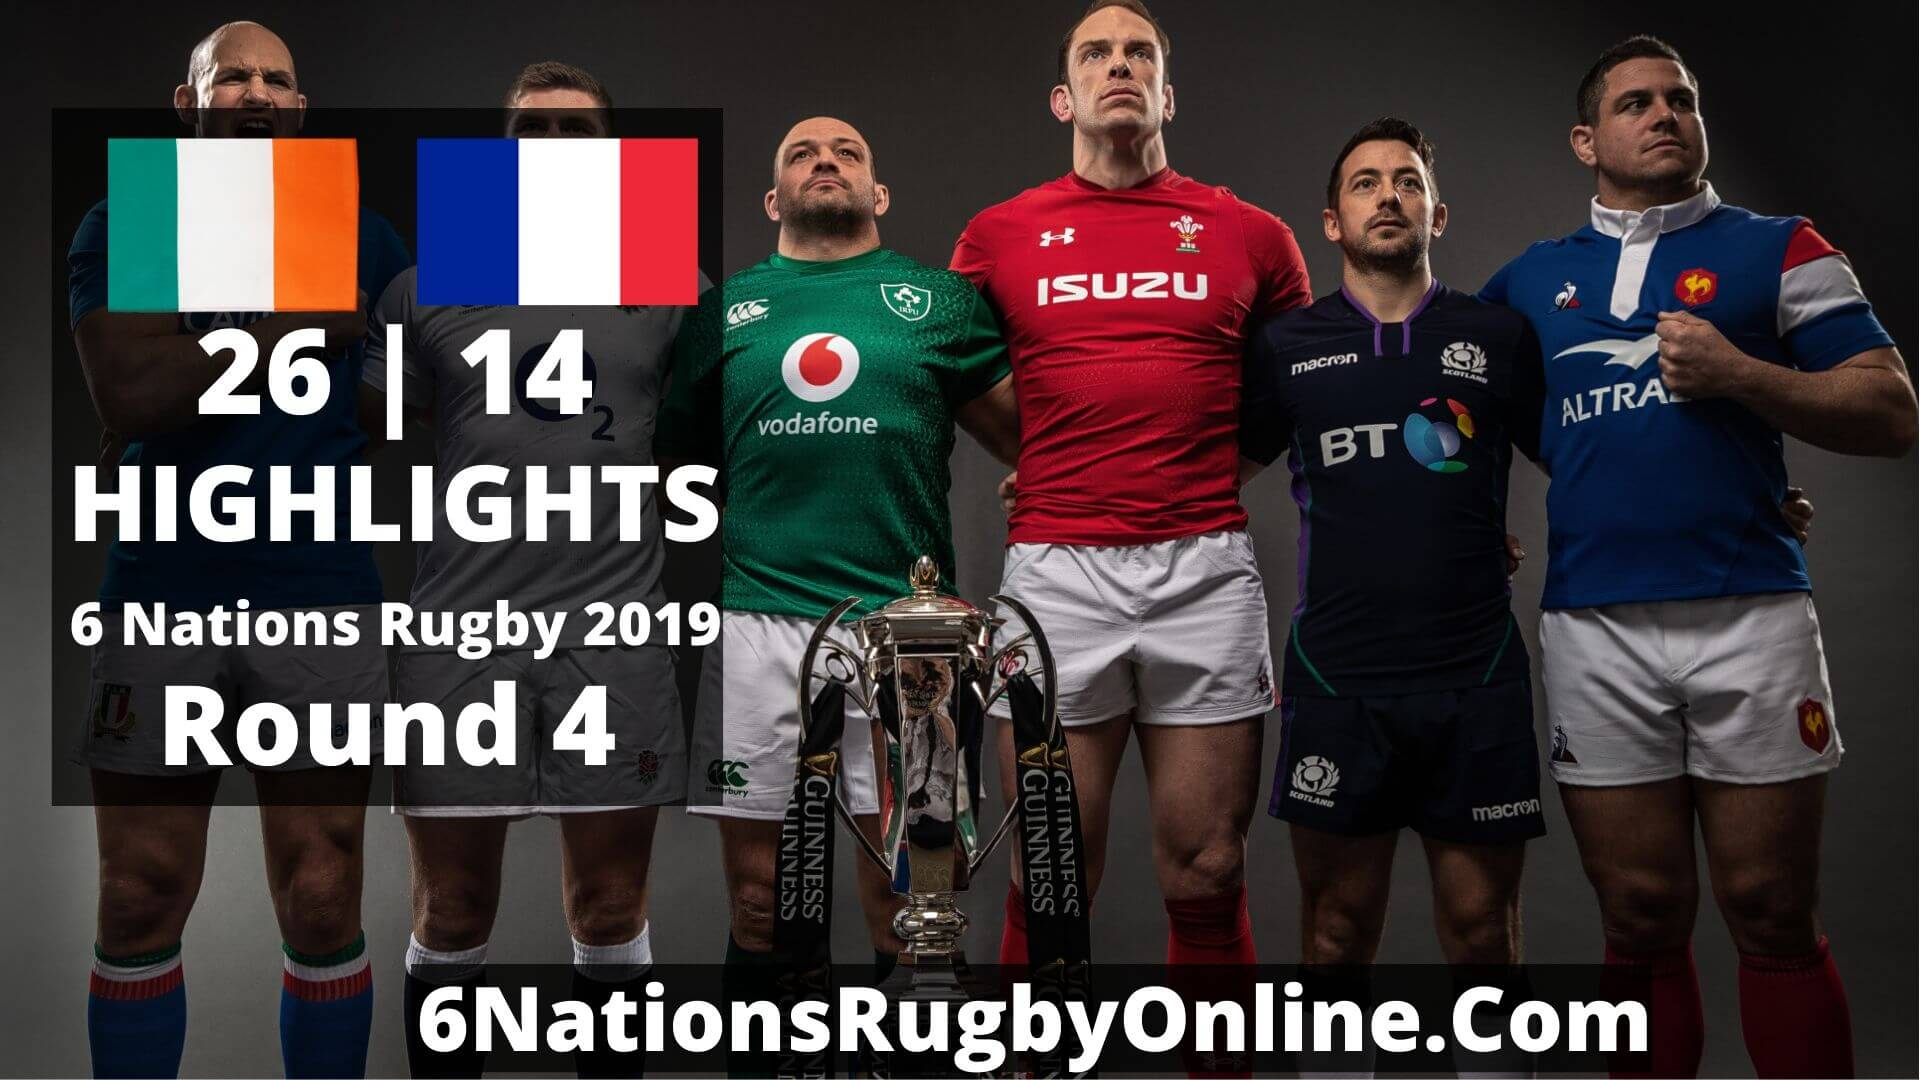 Ireland Vs France Highlights 2019 Six Nations Rugby Round 4